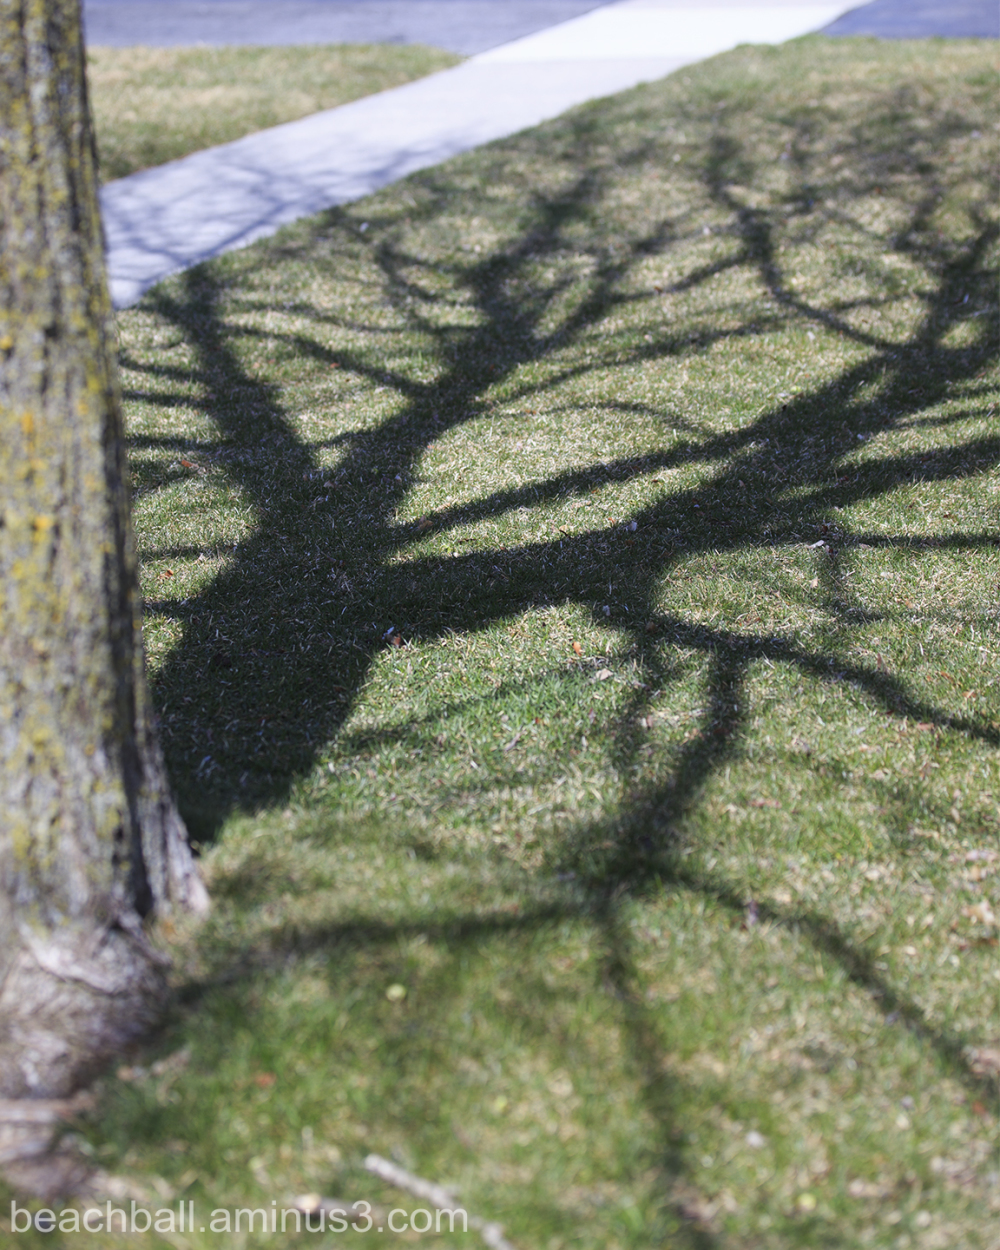 More Shadows